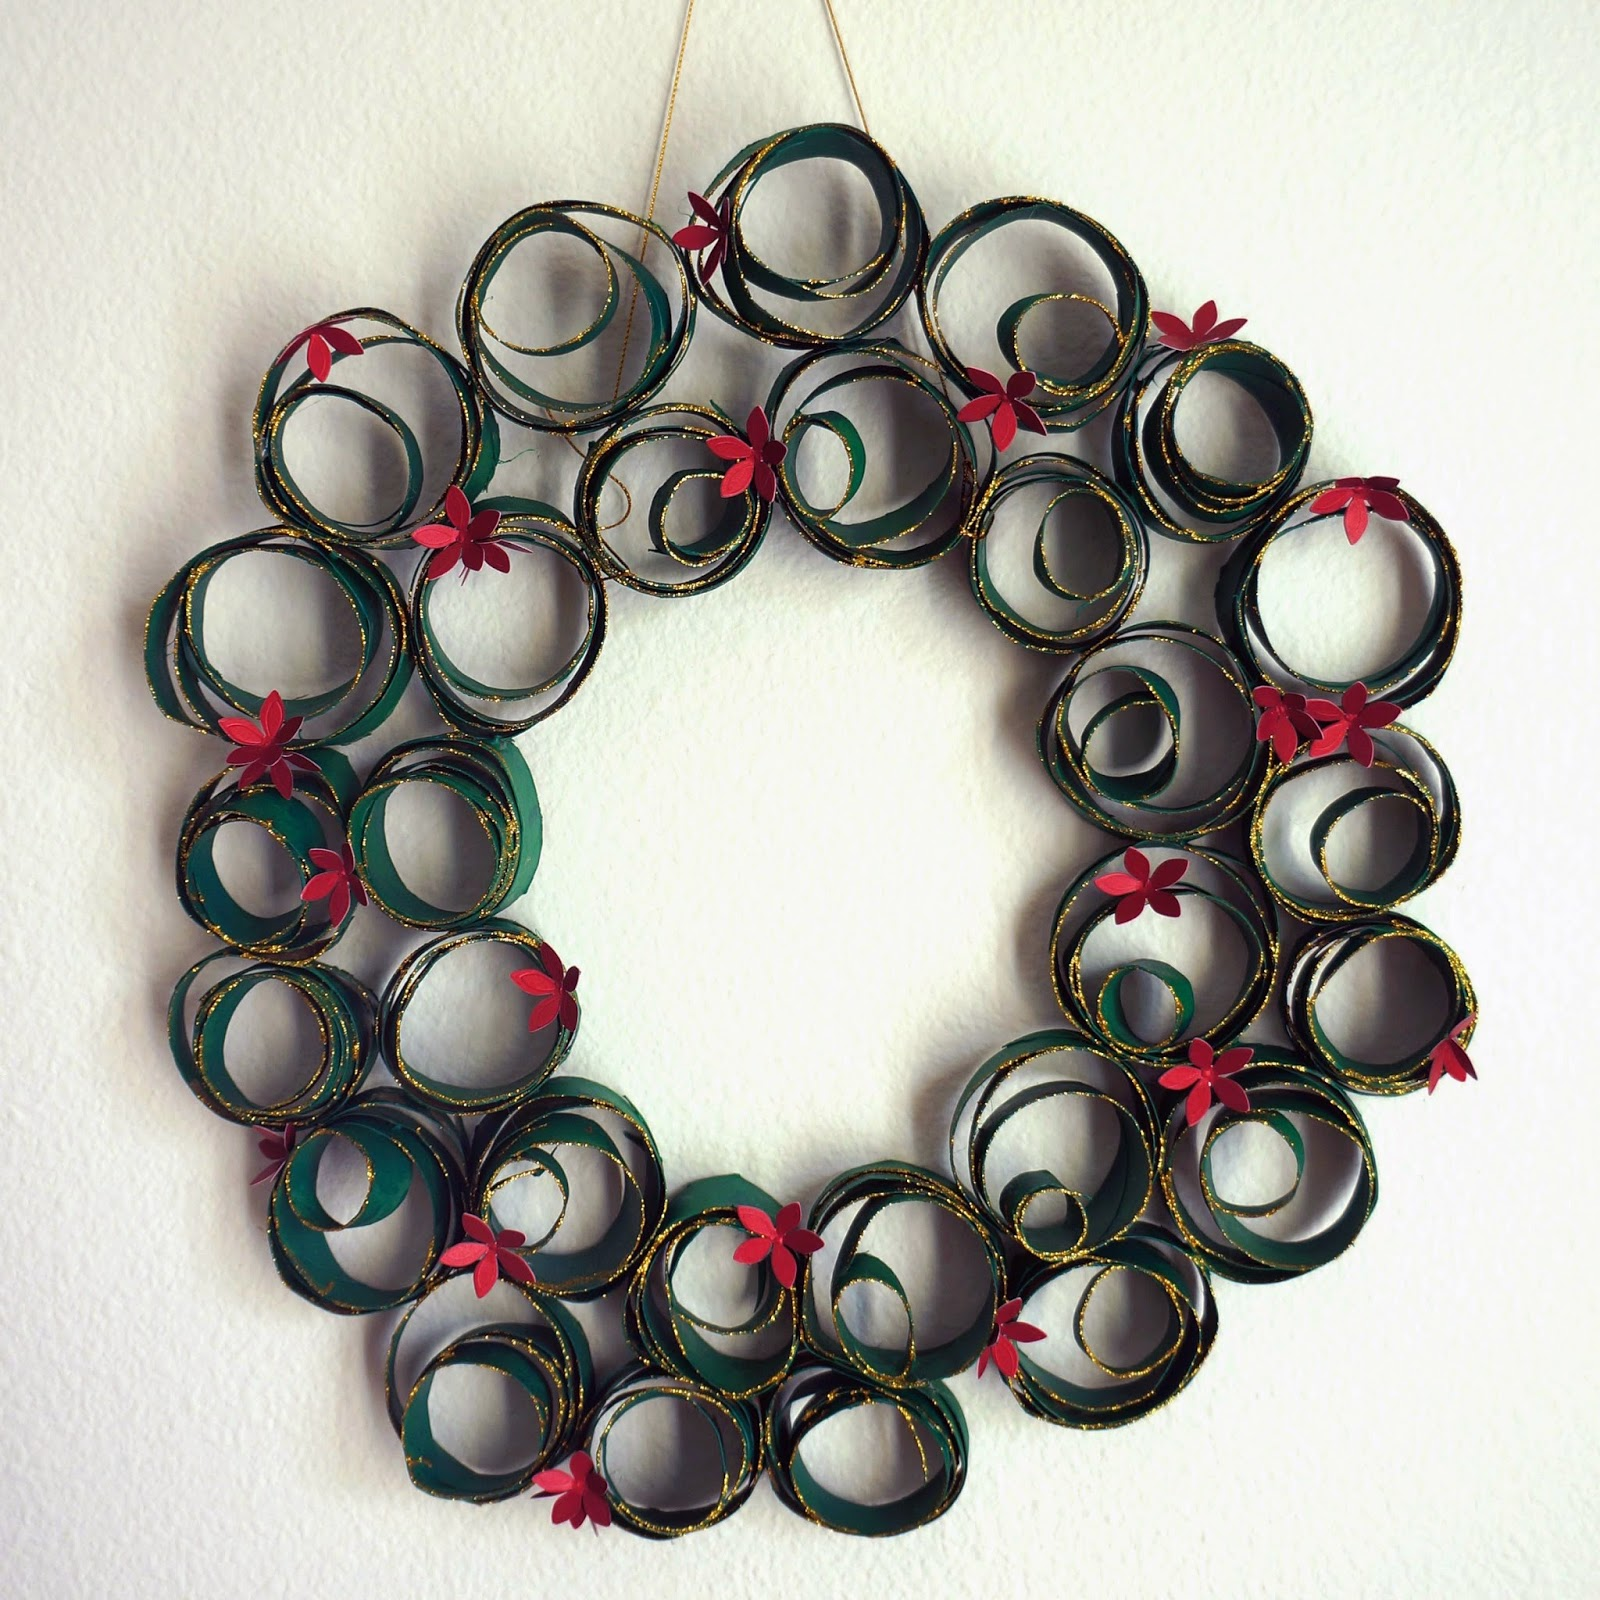 toilet paper roll christmas wreath 12142014